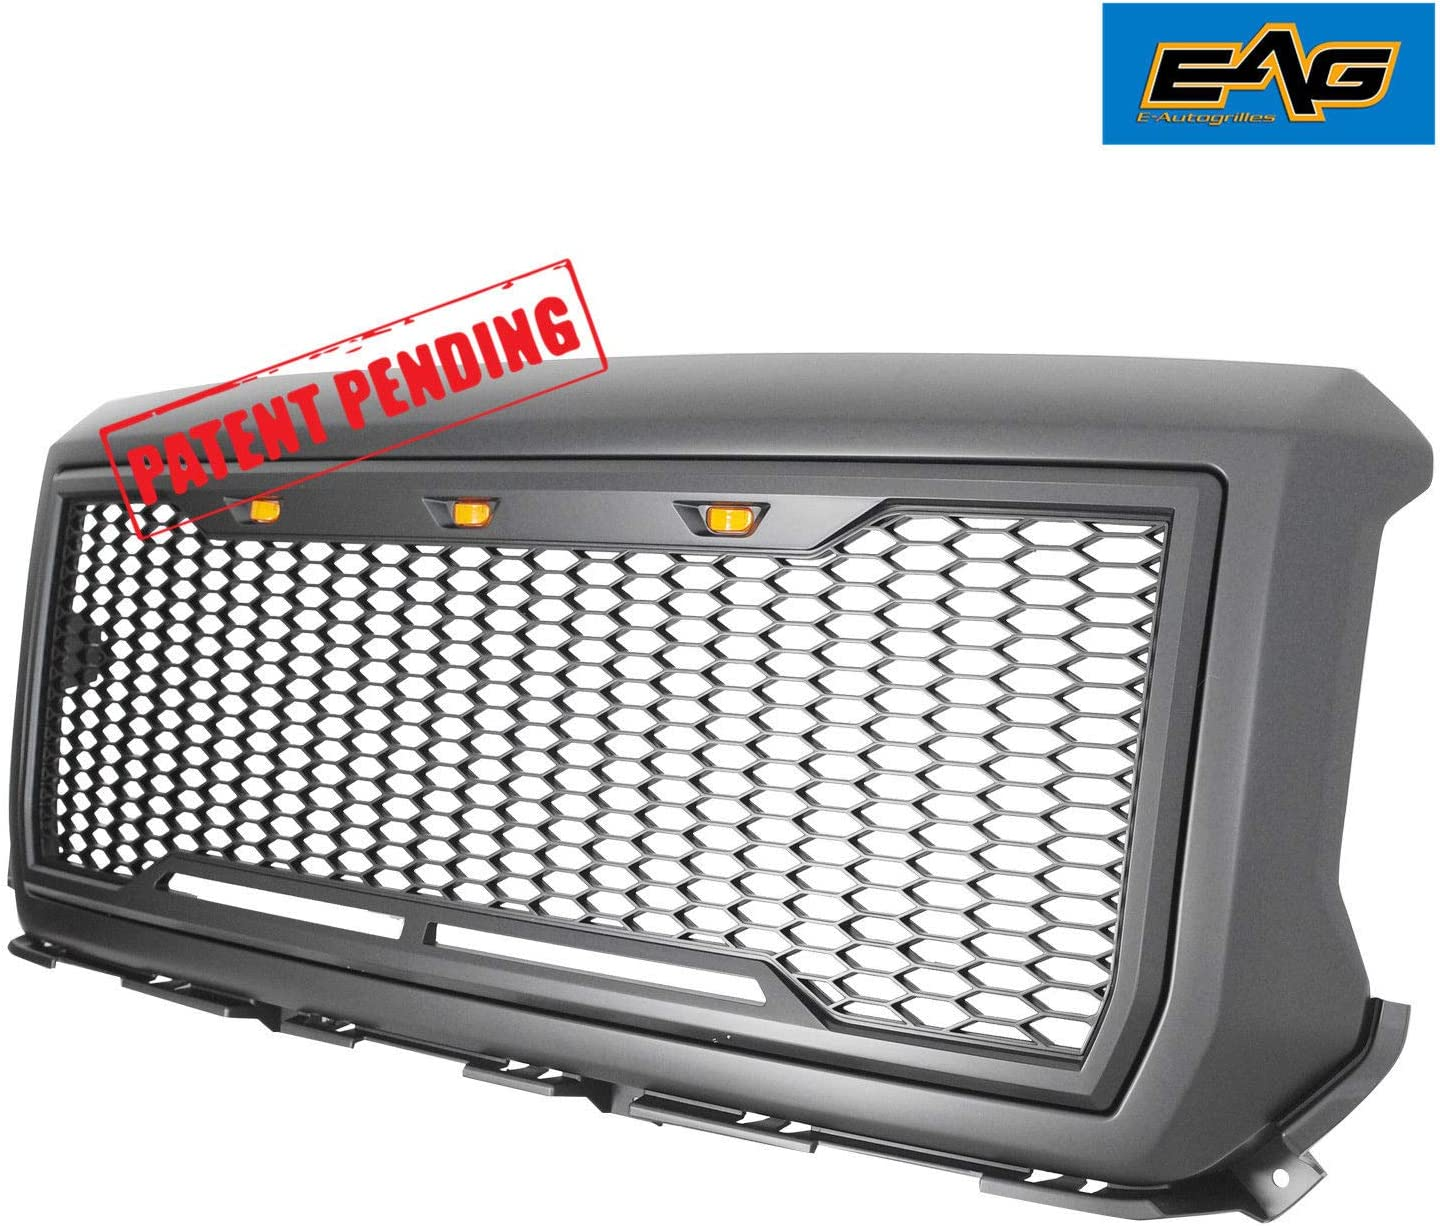 EAG Replacement Upper ABS Grille Front Hood Grill with Amber LED Lights Metalic Charcoal Gray Fit for 14-15 GMC Sierra 1500